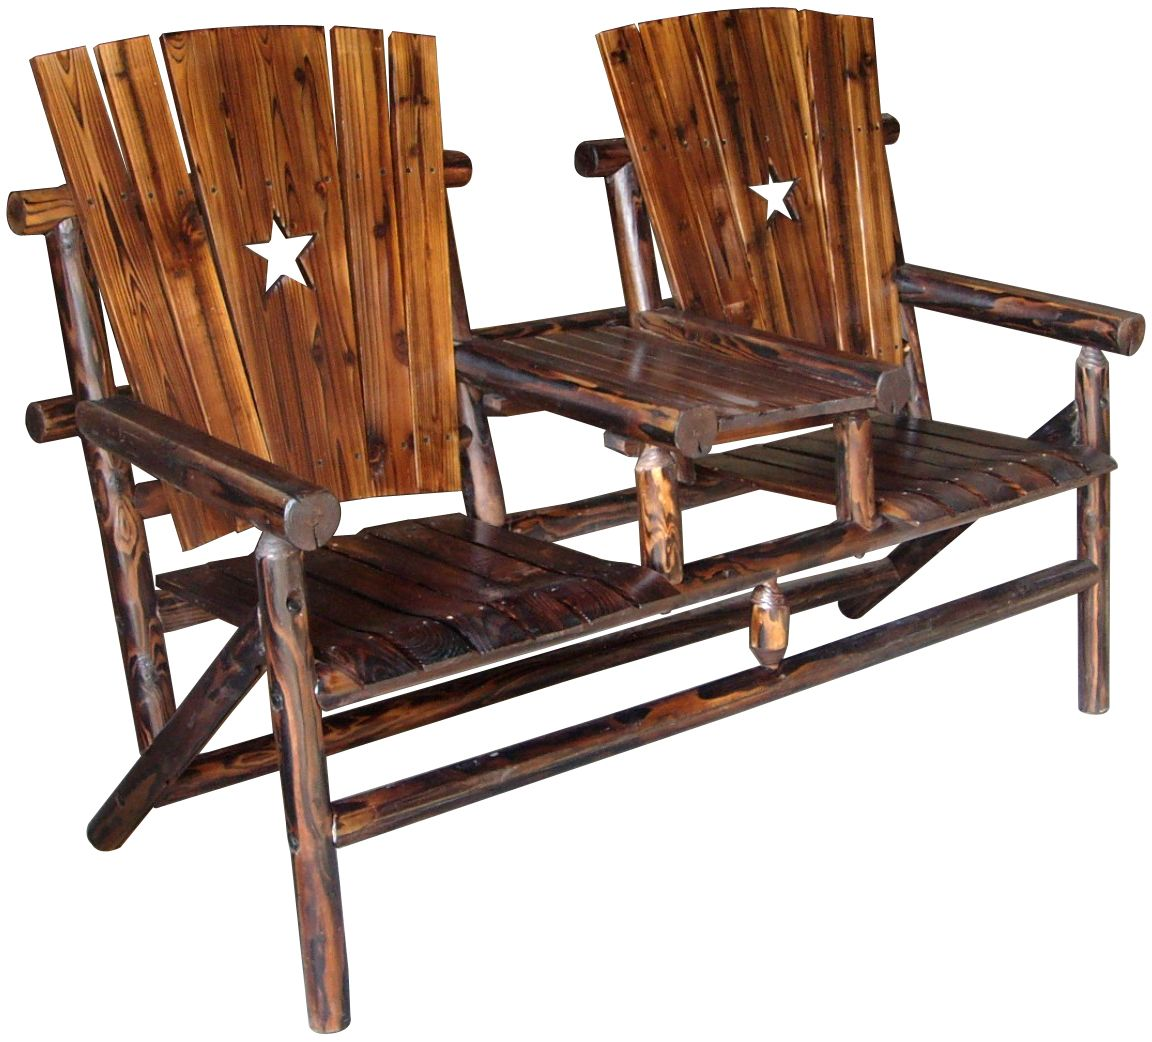 Texas Double Bench And Tray With The Texas Lone Star Patio